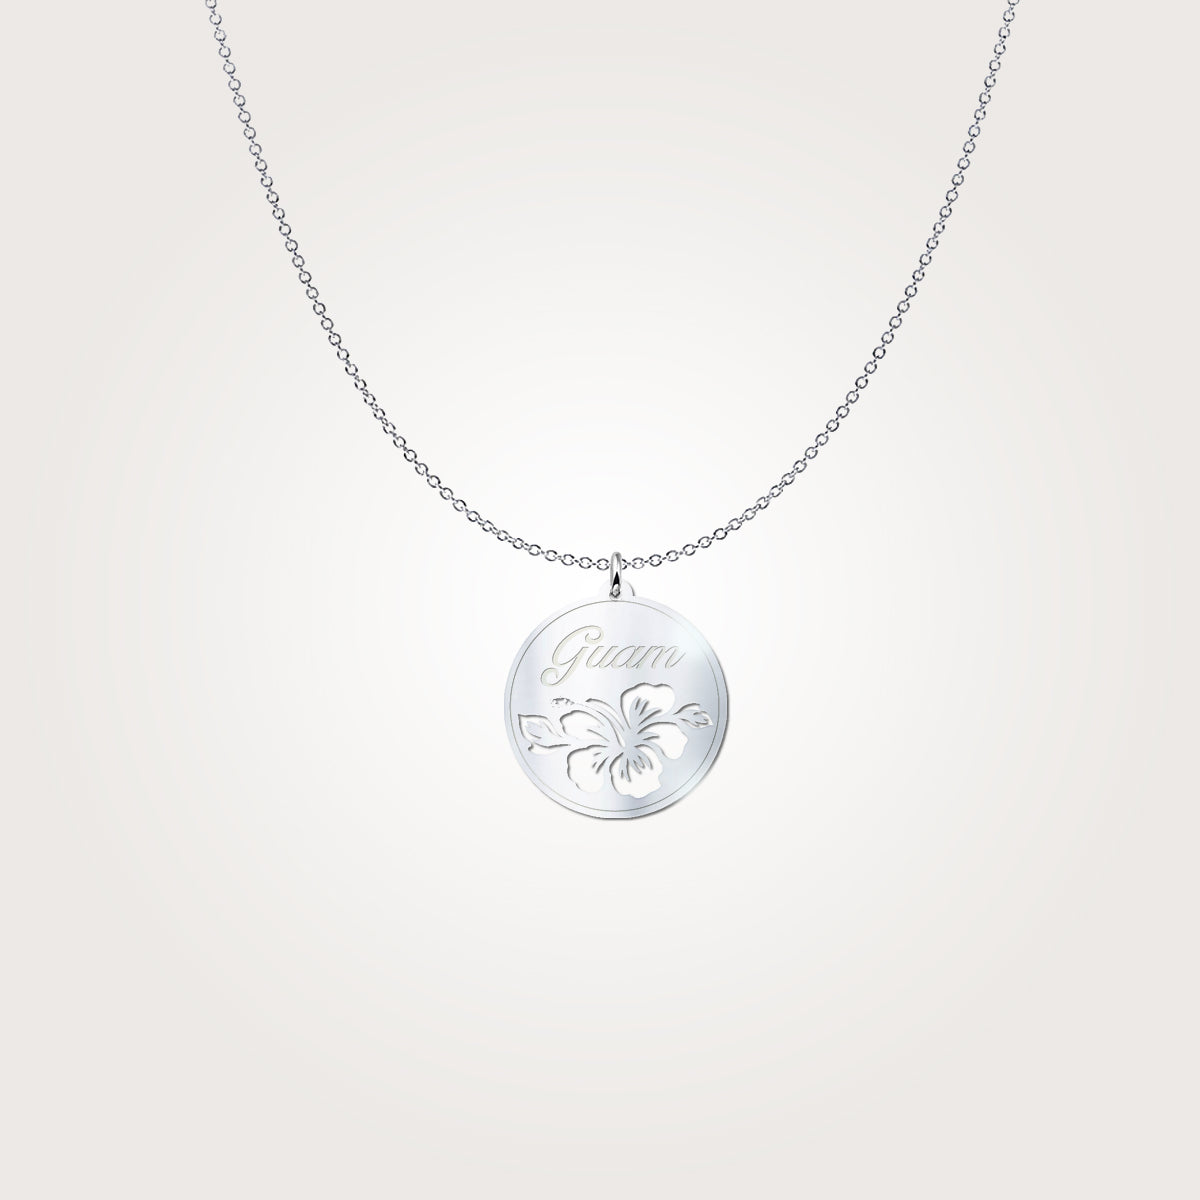 Guam Hibiscus Cutout Sterling Silver Necklace